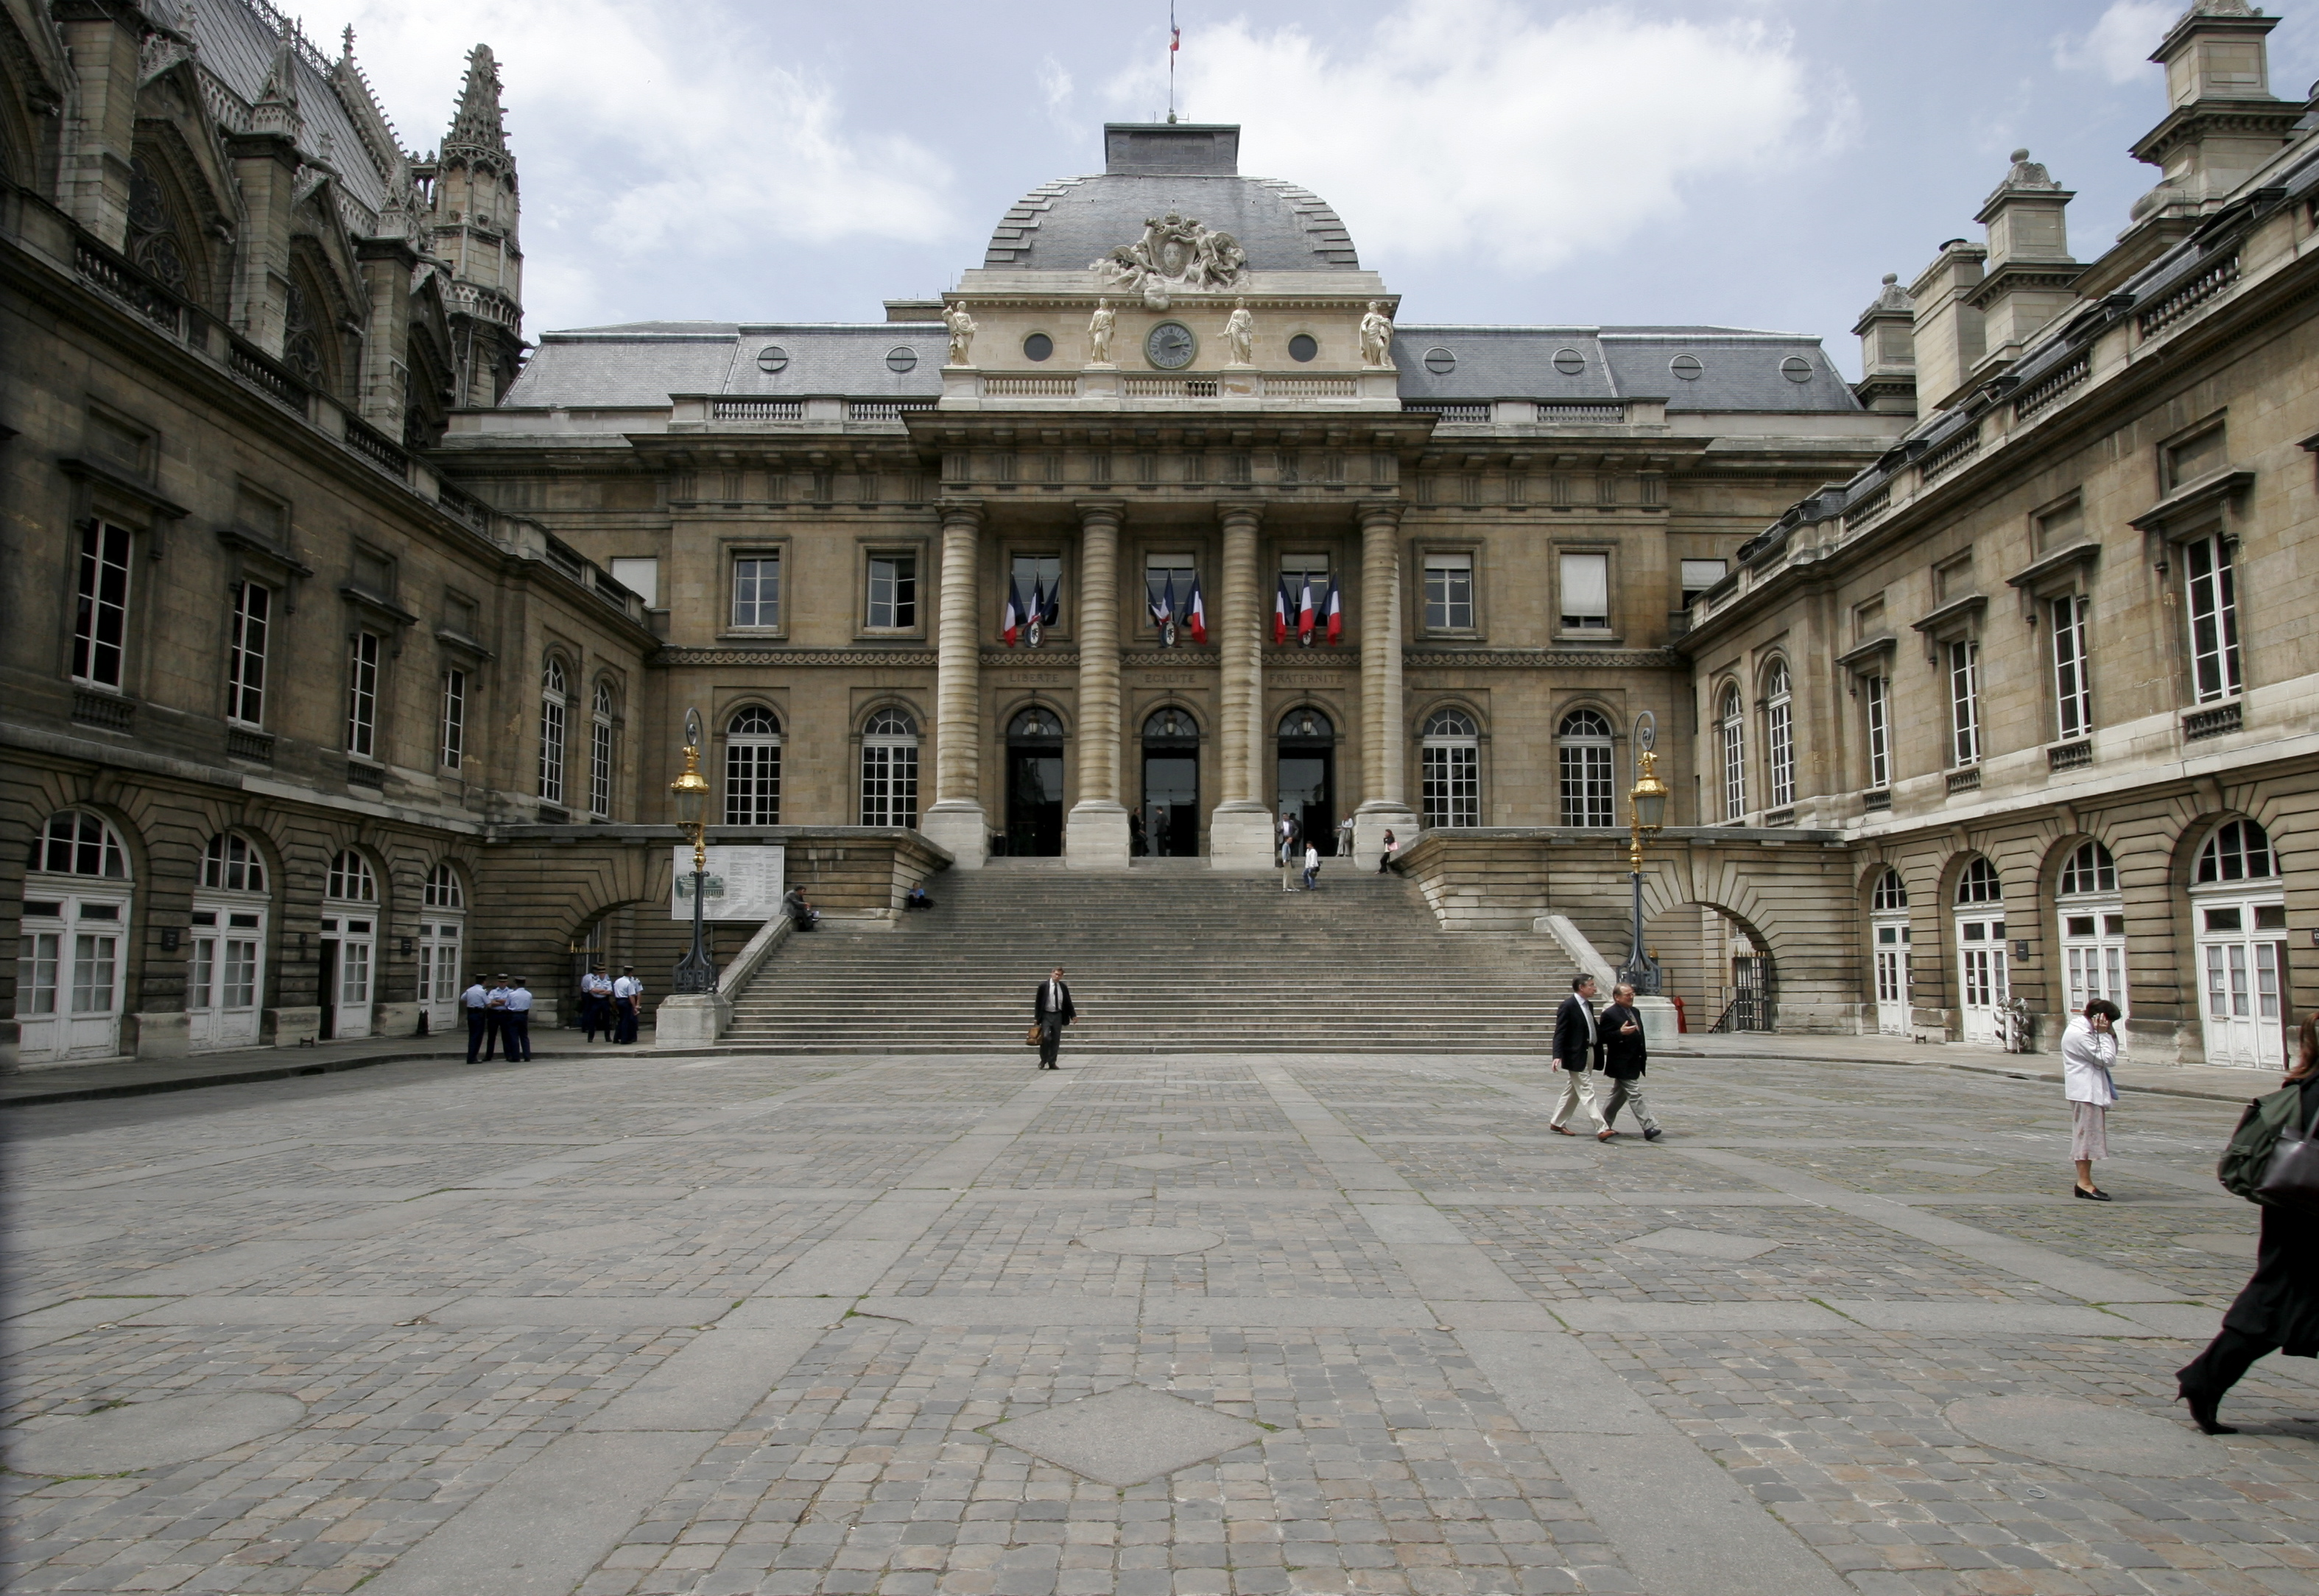 File:Palais-de-justice-paris.jpg - Wikimedia Commons